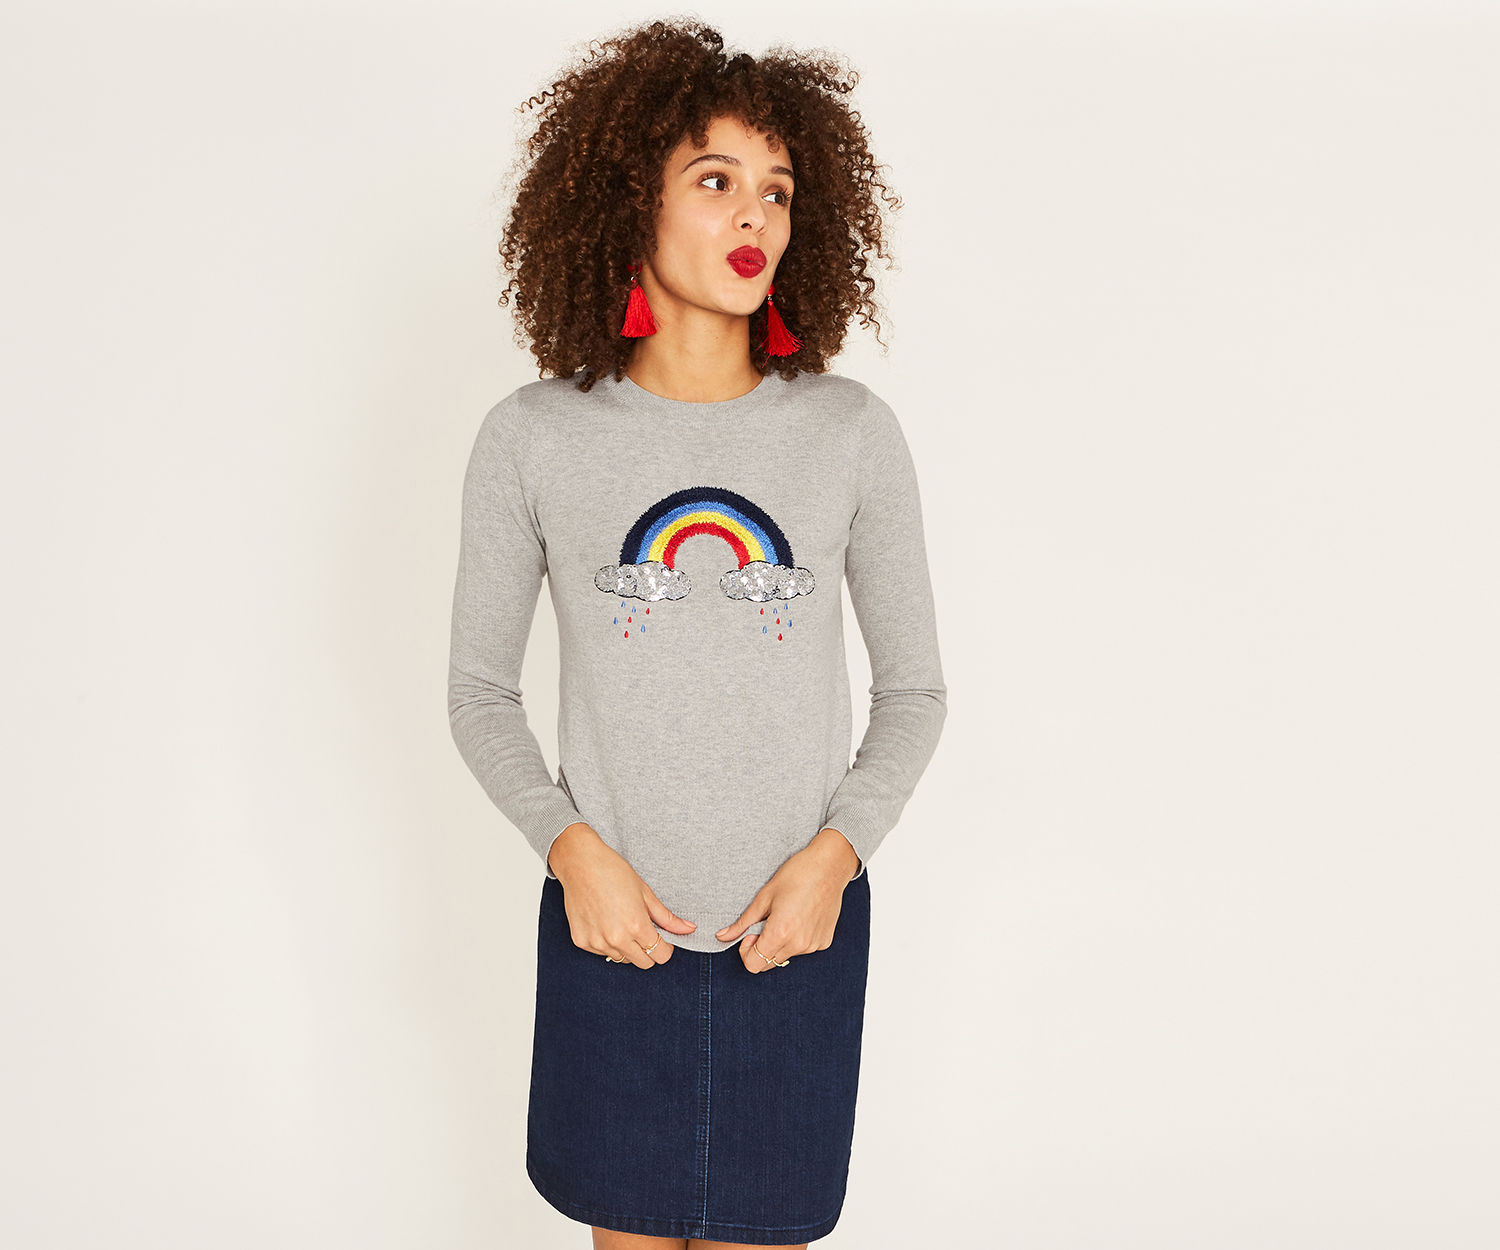 Oasis Embroidered Rainbow Knit